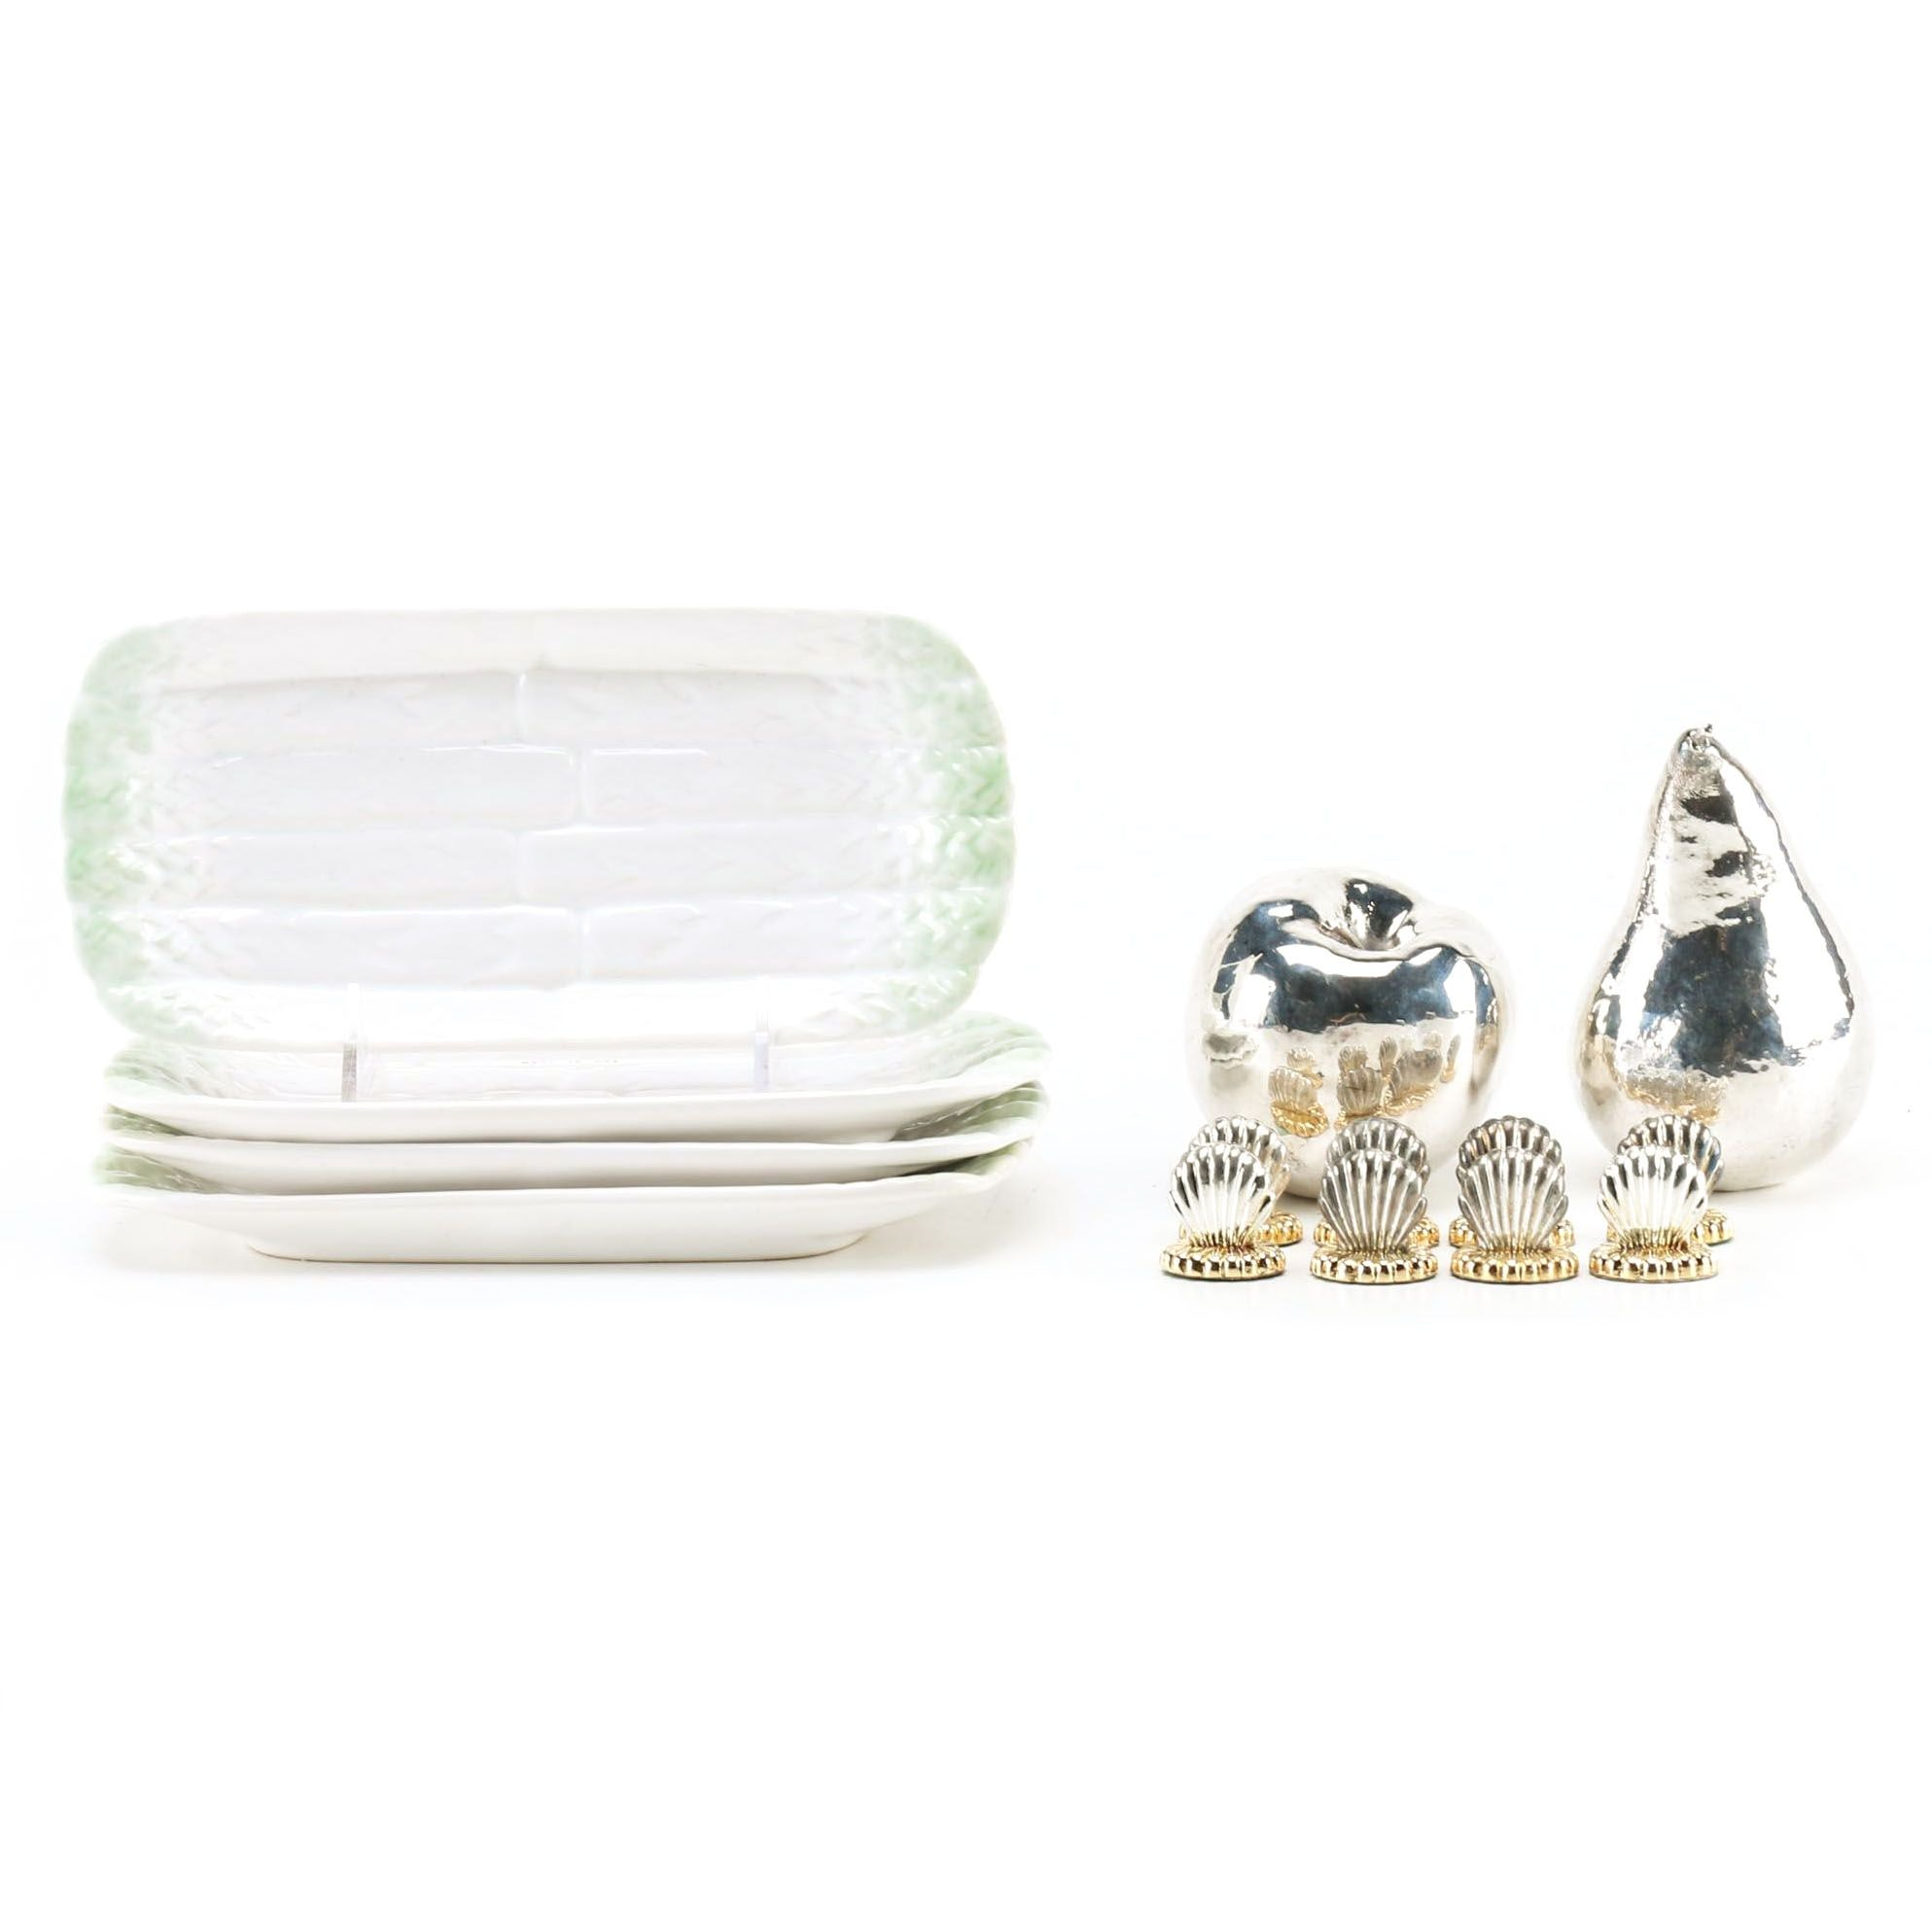 Table Accessories for Entertaining Including Bordallo Pinheiro From Portugal